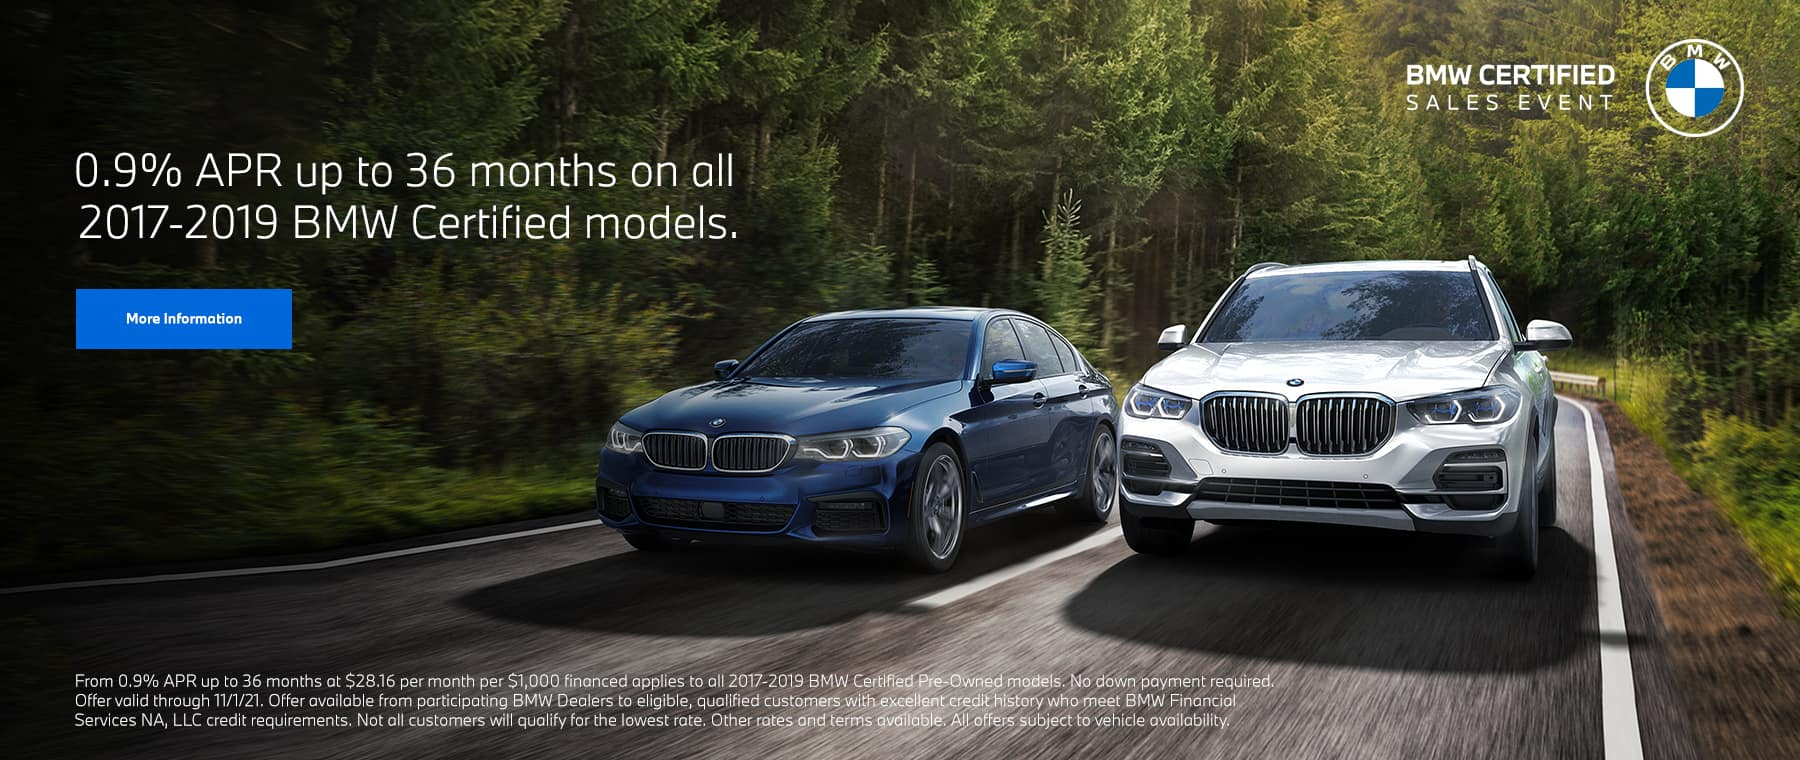 0.9% APR up to 36 months on all 2017-2019 BWM Certified models.